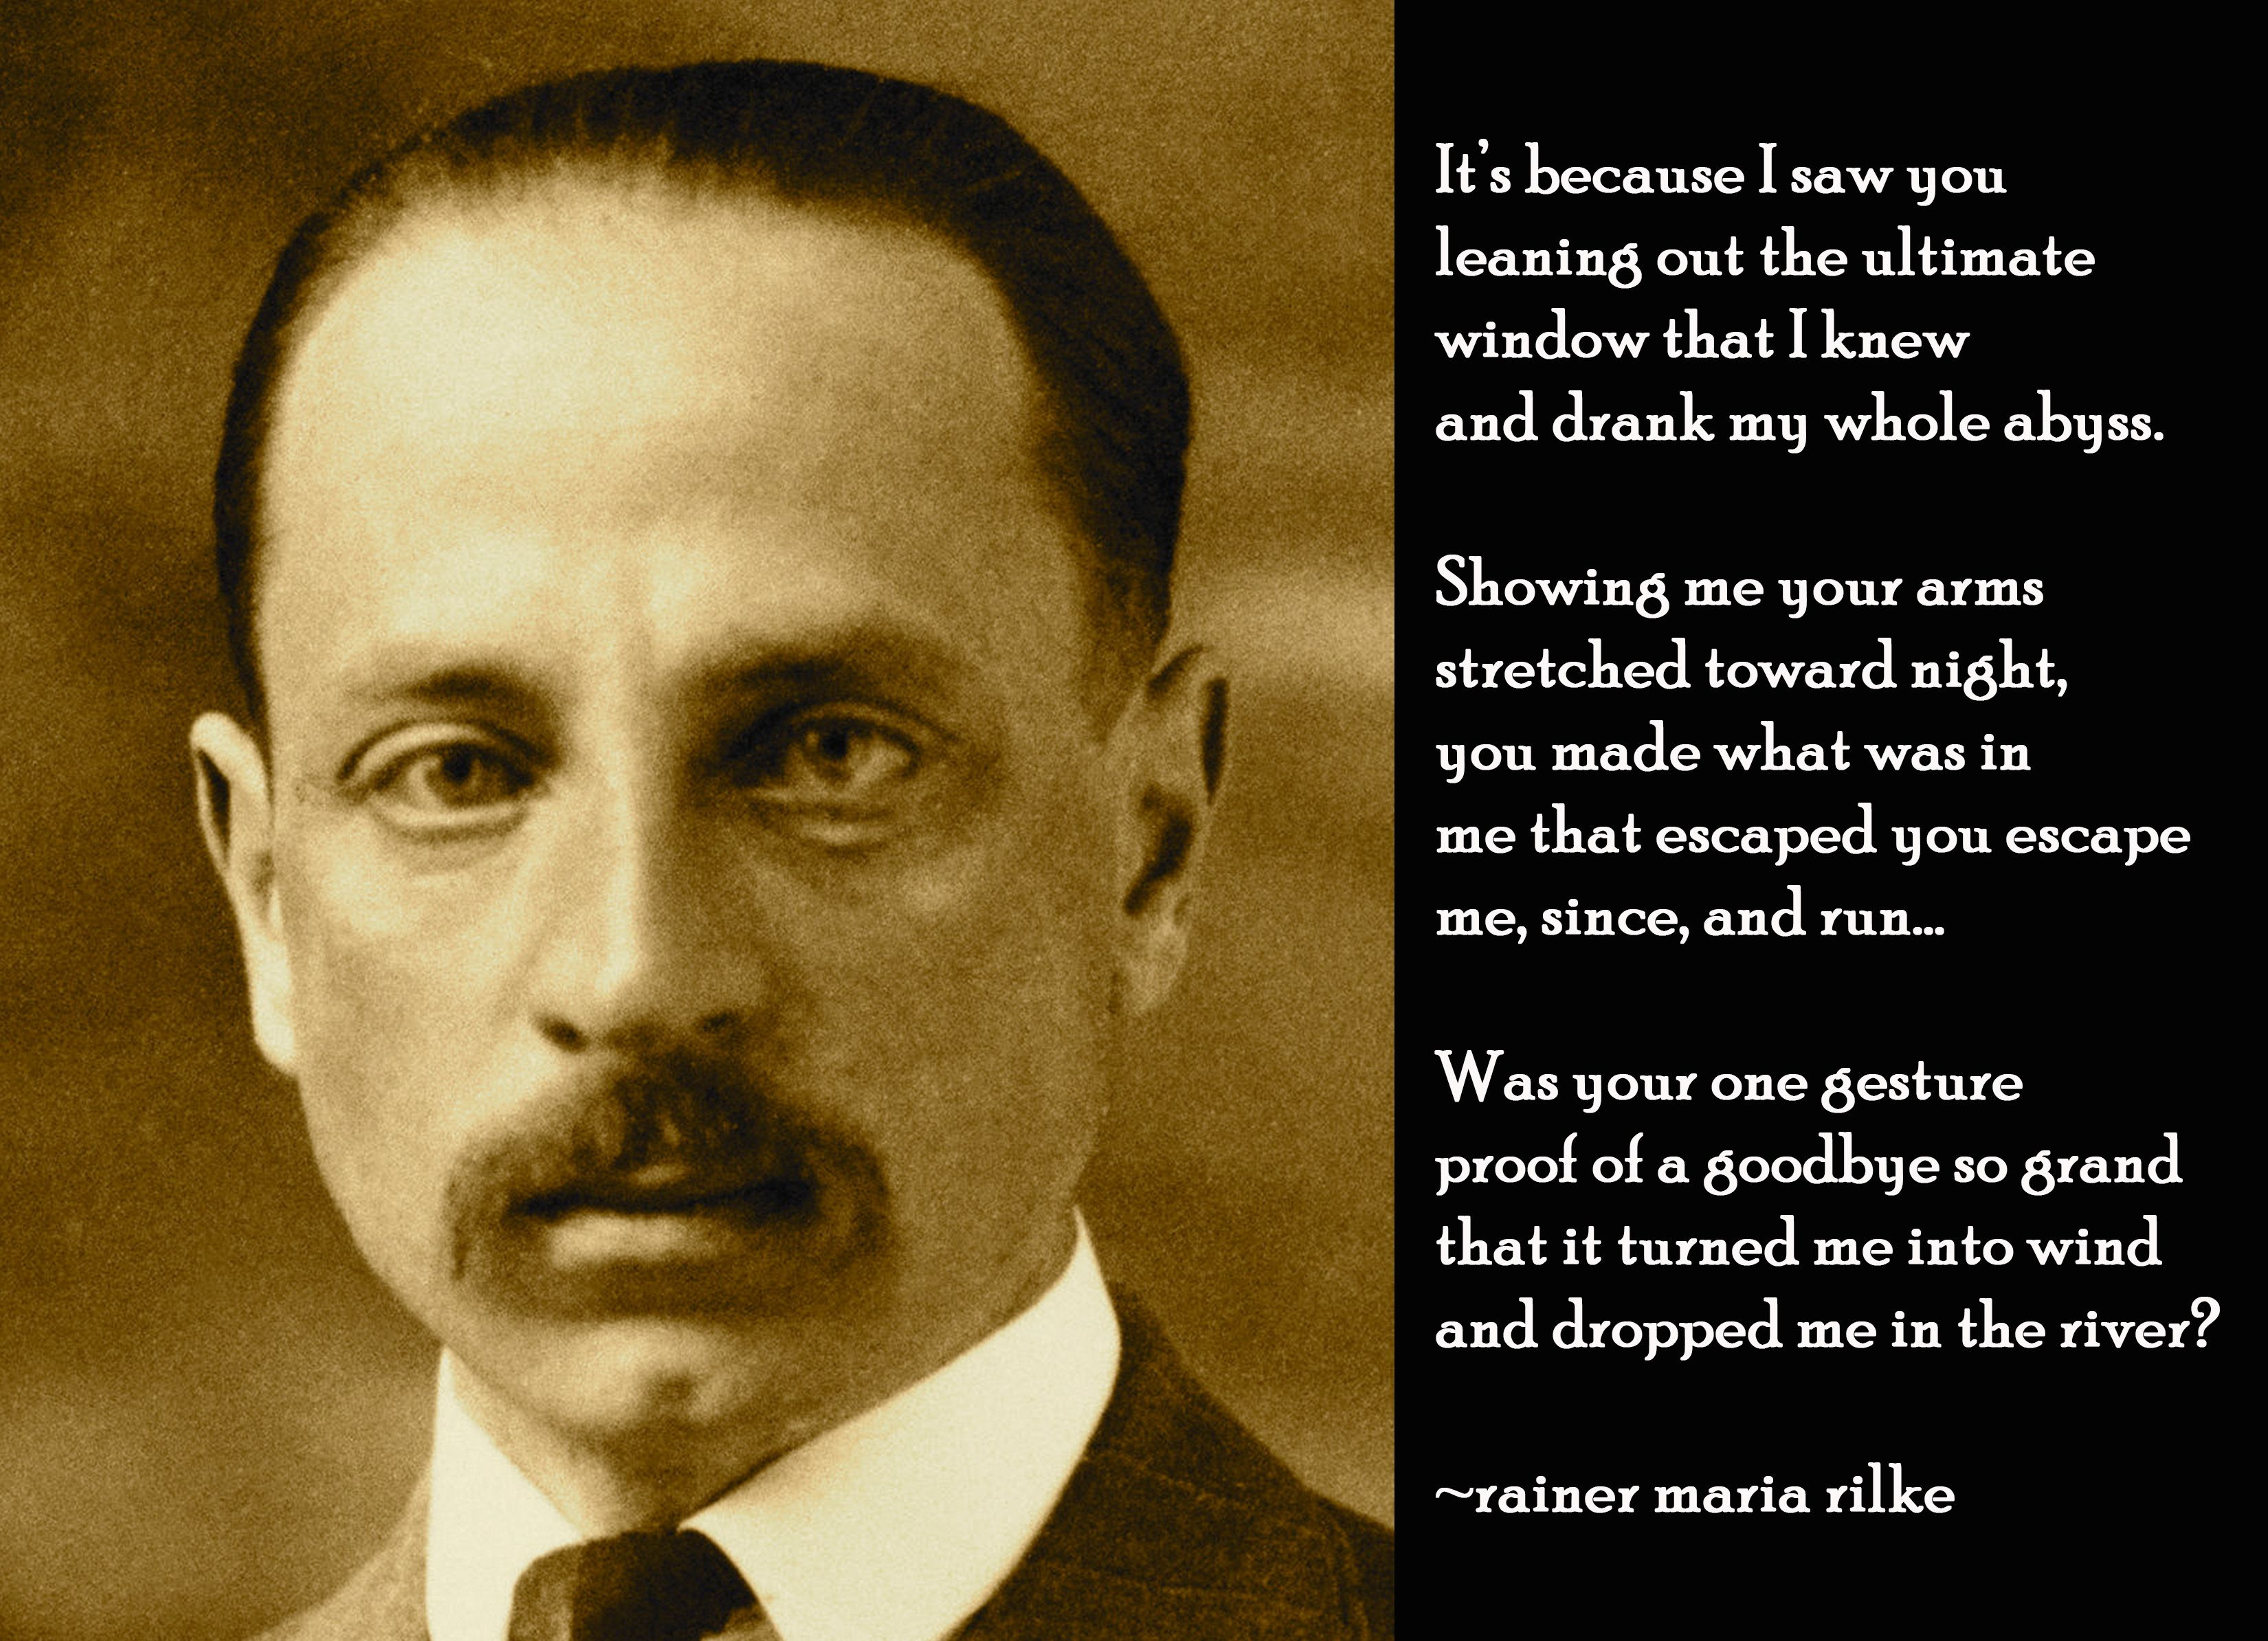 rainer maria rilke The panther, by rainer maria rilke is an insightful poem, and a saddening one of life in a cage may it touch your soul as it has touched mine.